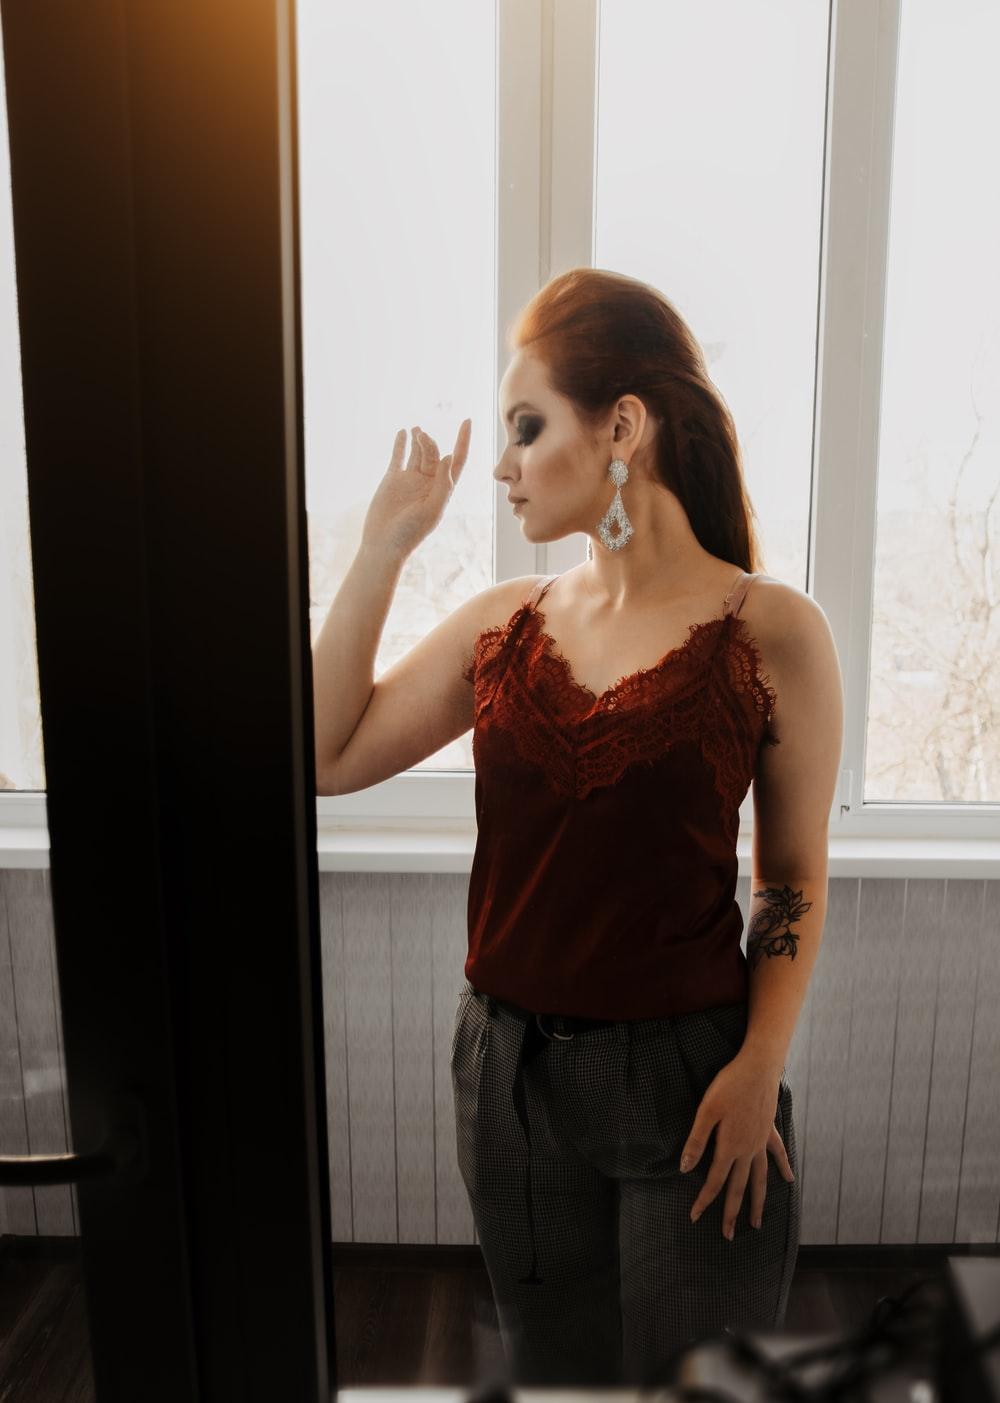 woman in red spaghetti strap top and black denim jeans standing beside glass window